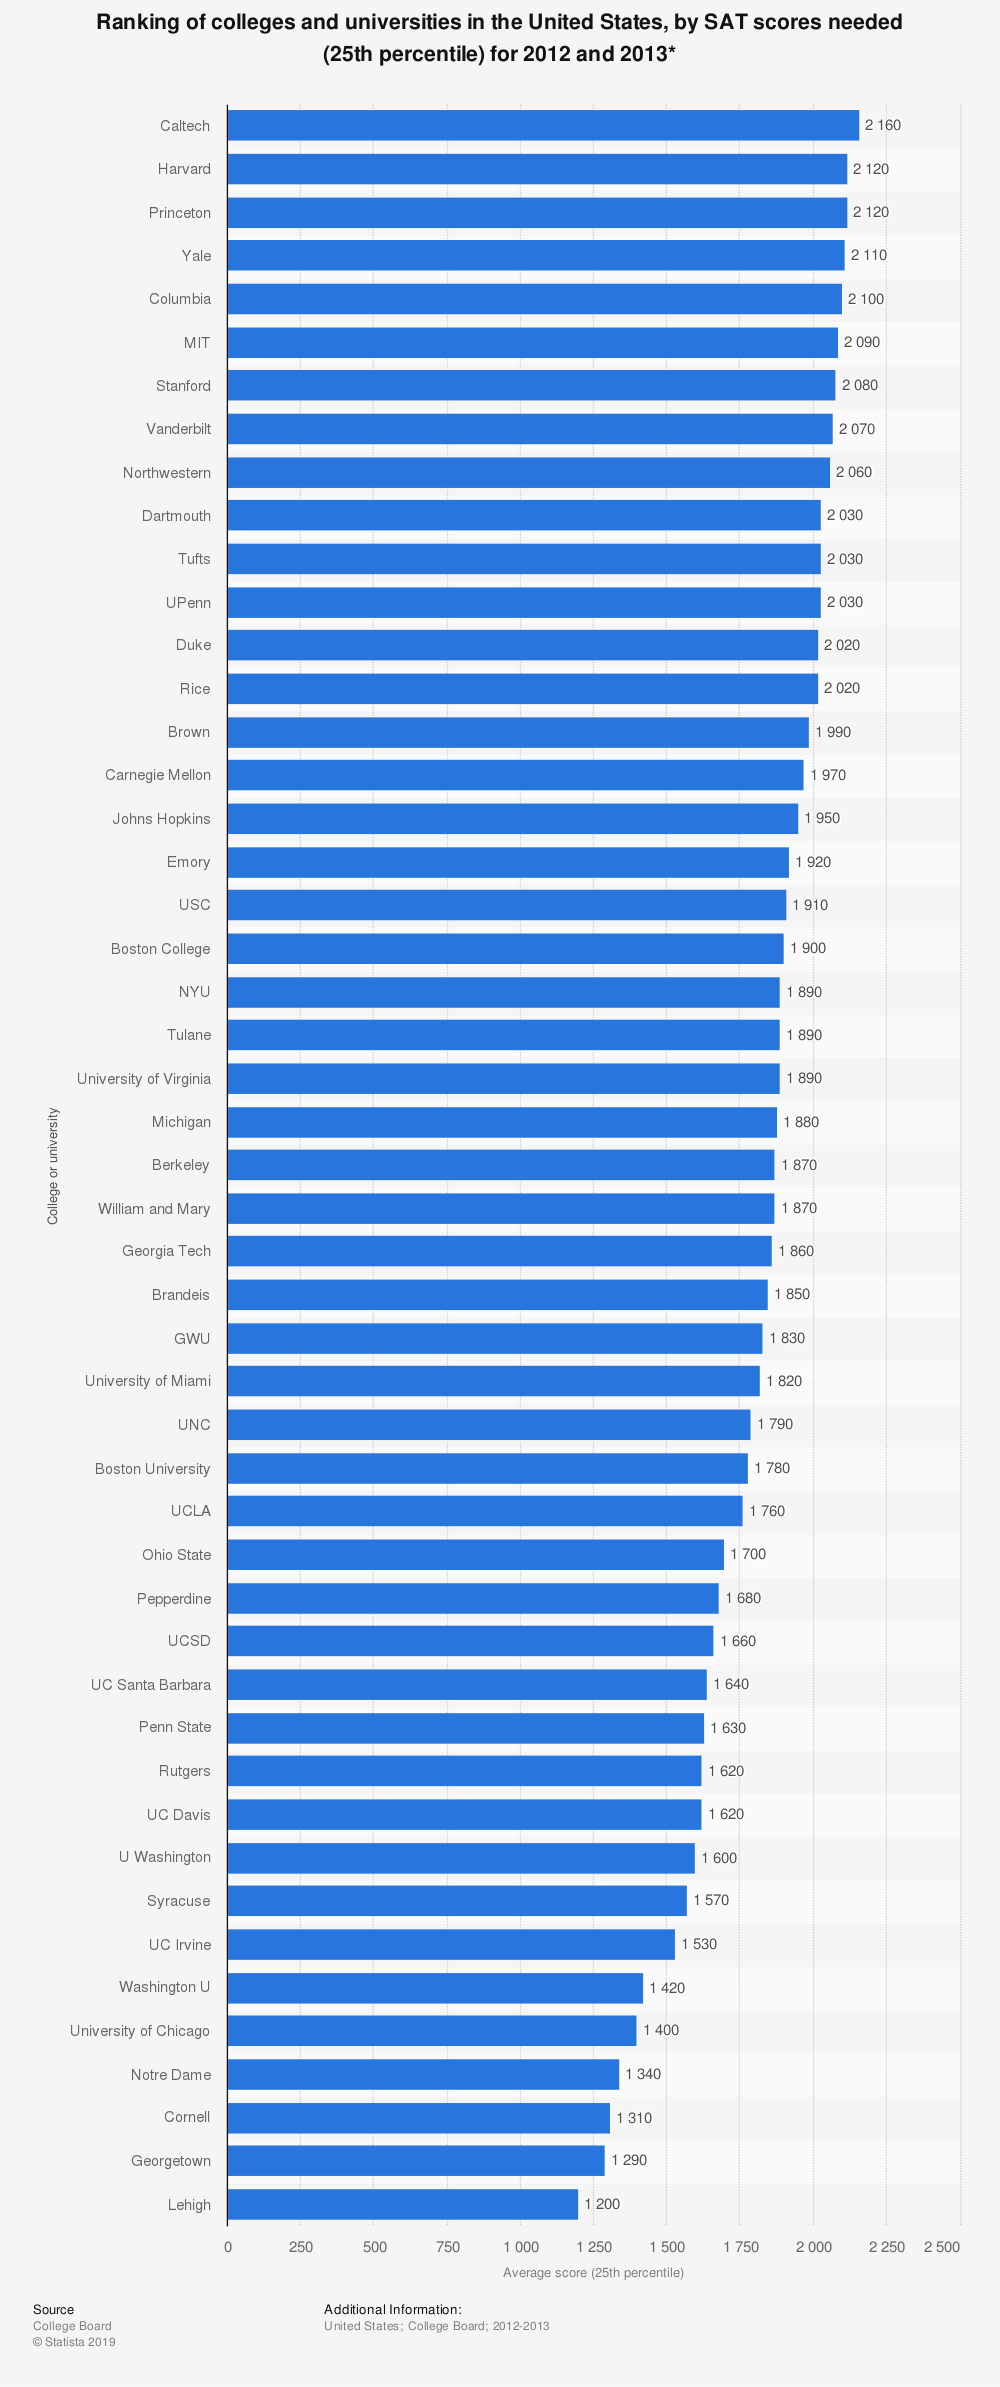 Statistic: Ranking of colleges and universities in the United States, by SAT scores needed (25th percentile) for 2012 and 2013* | Statista